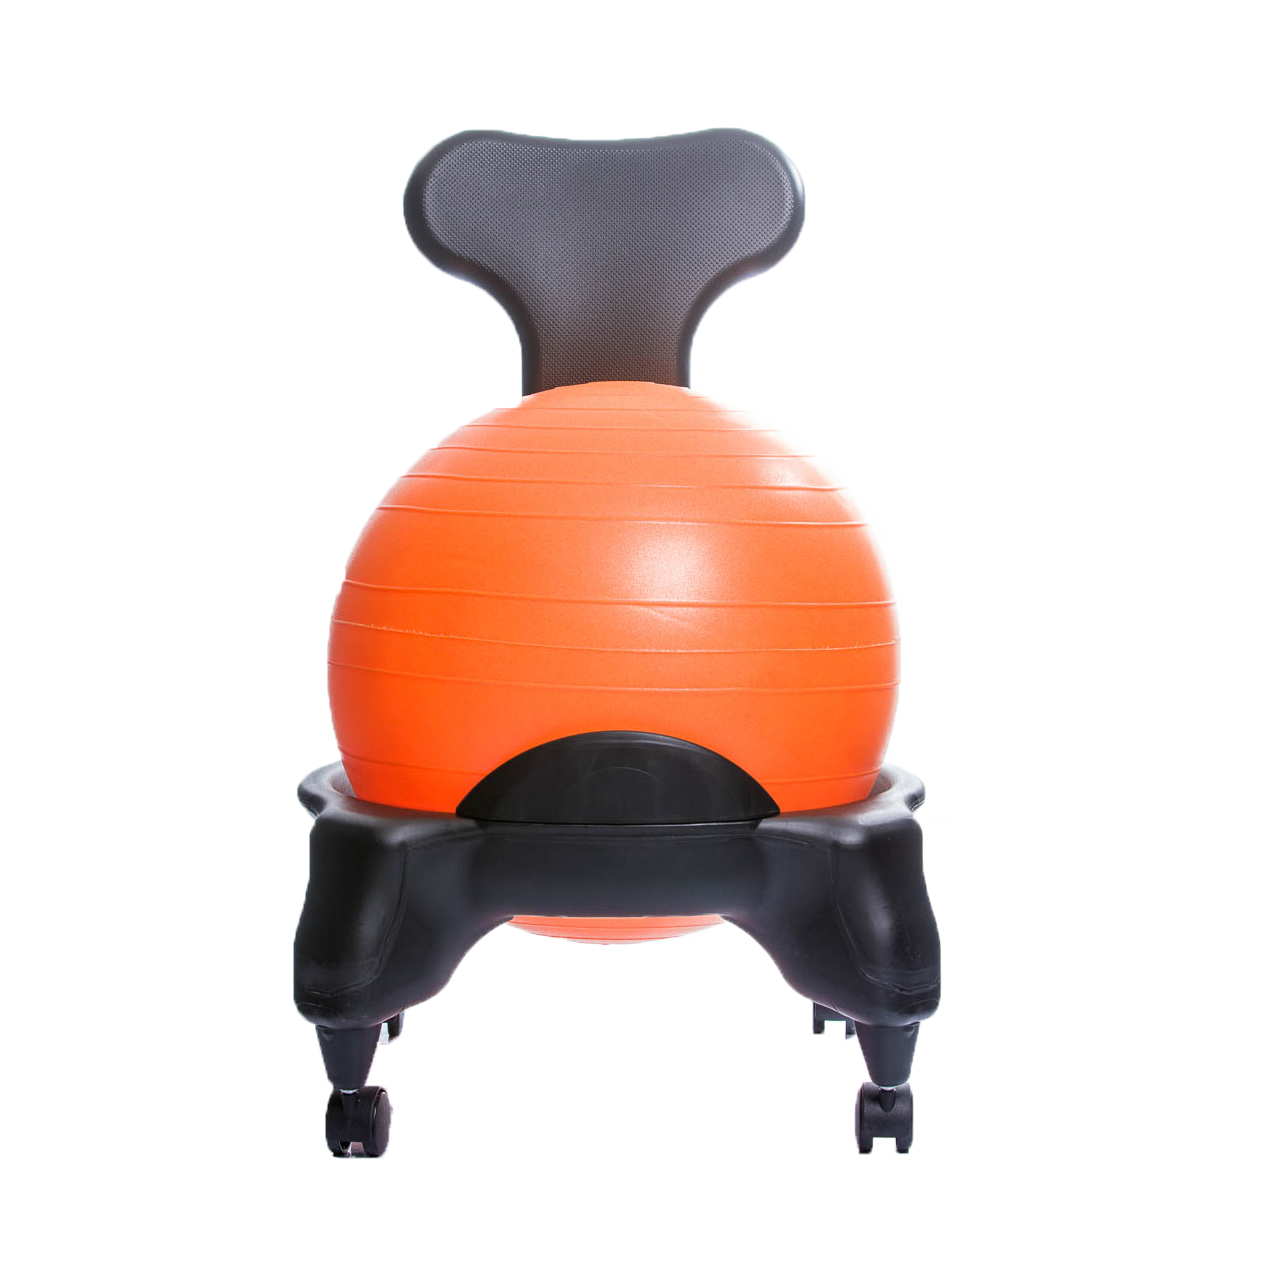 TONIC CHAIR Originale ballon Orange - Chaise Ergonomique